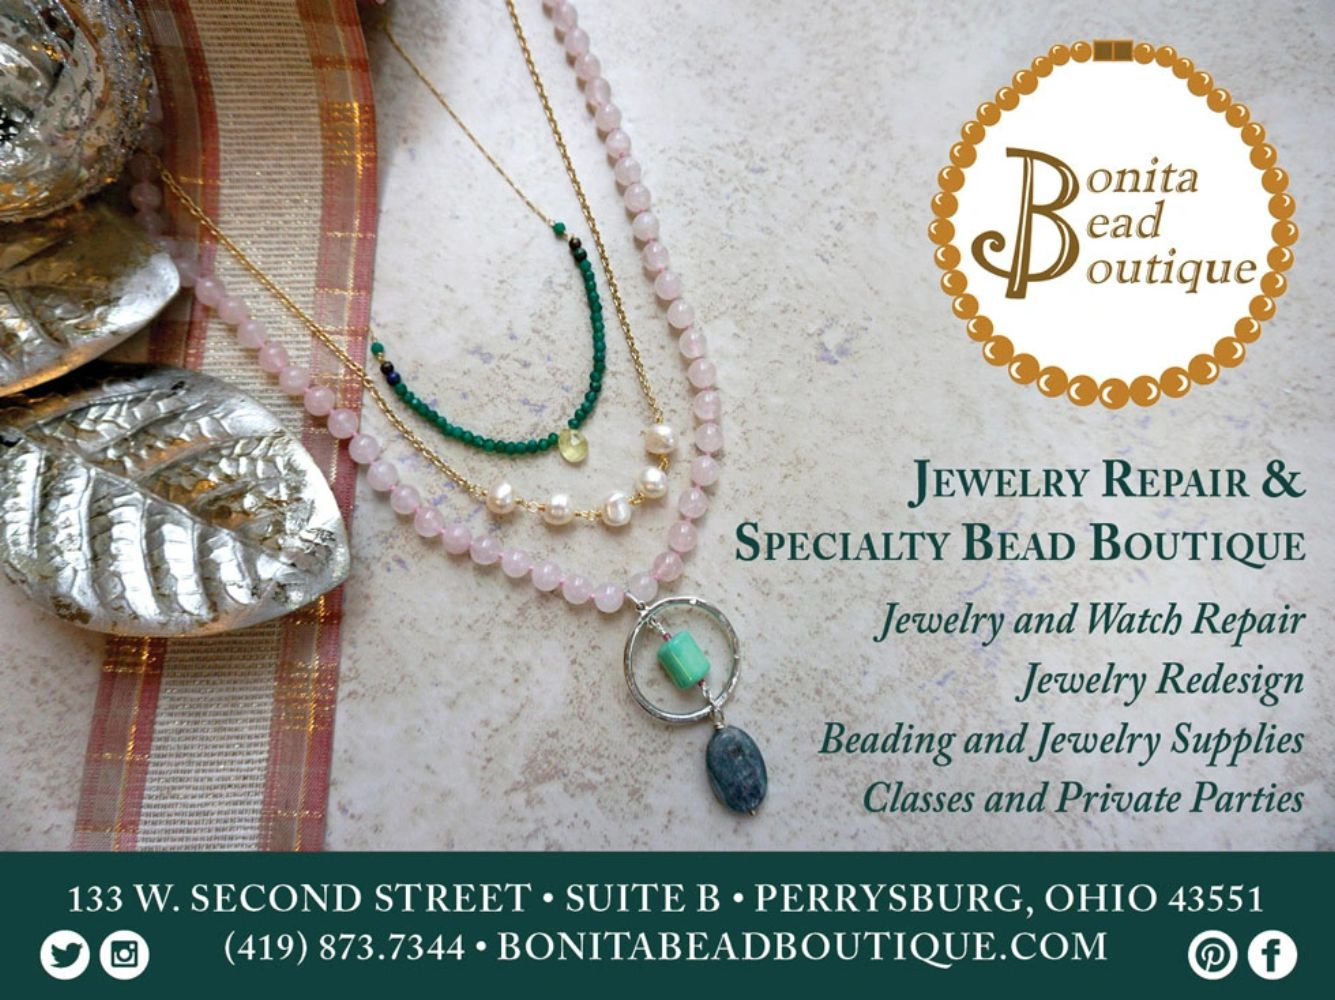 Jewelry and Watch Repair, specialty bead boutique in Perrysburg, Ohio